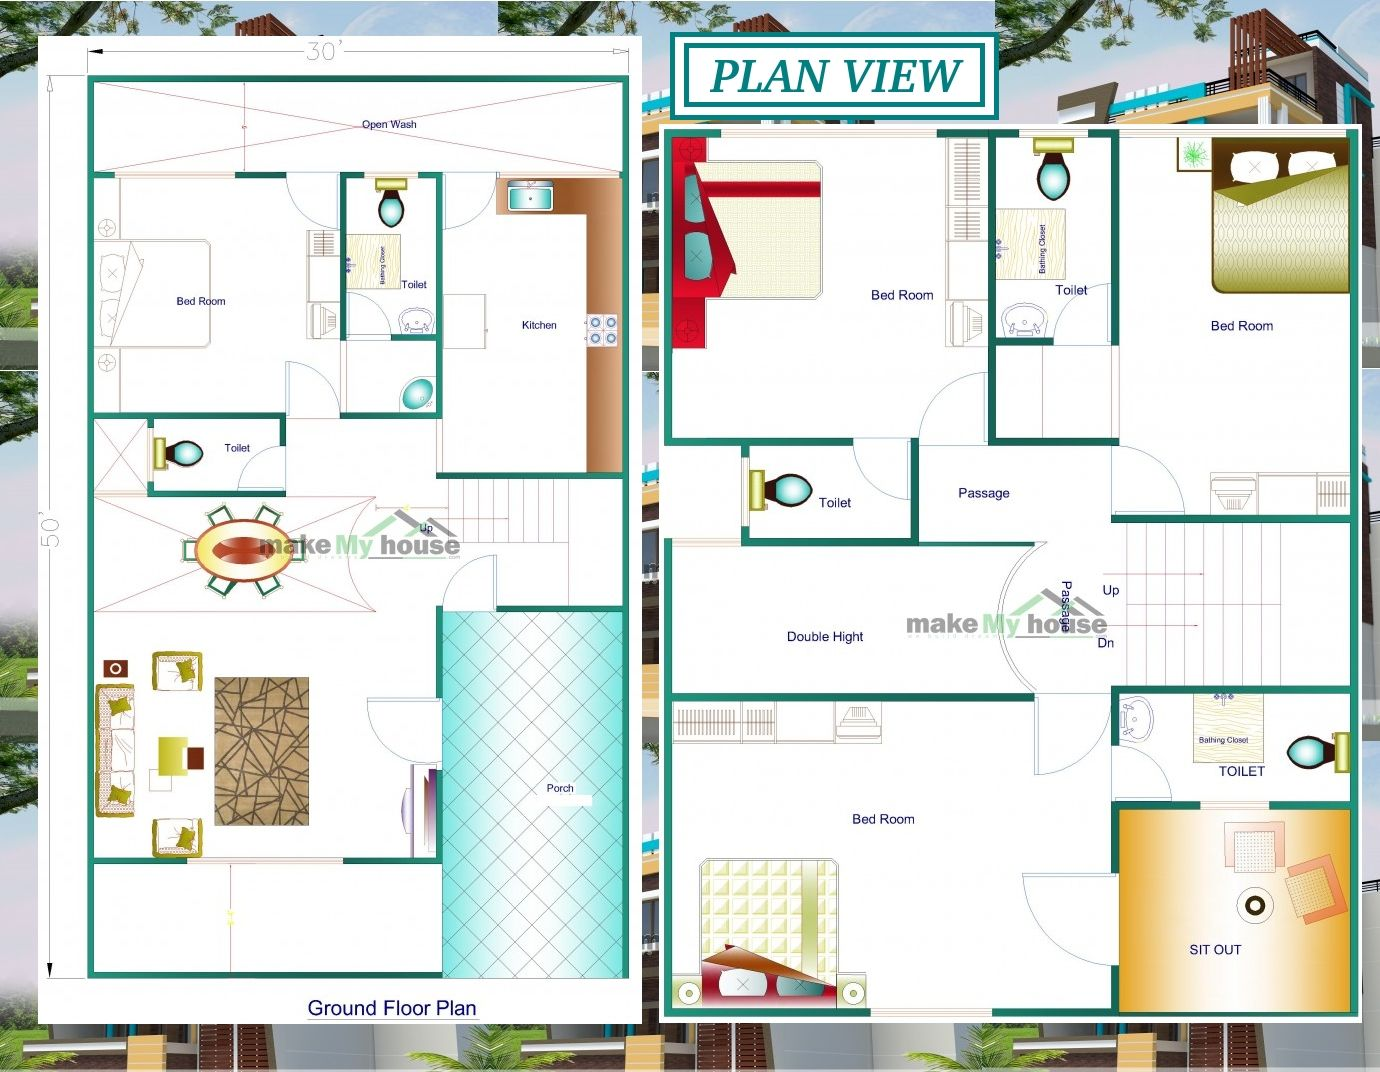 Plan View of # housedesign by MMH # homedesign ...